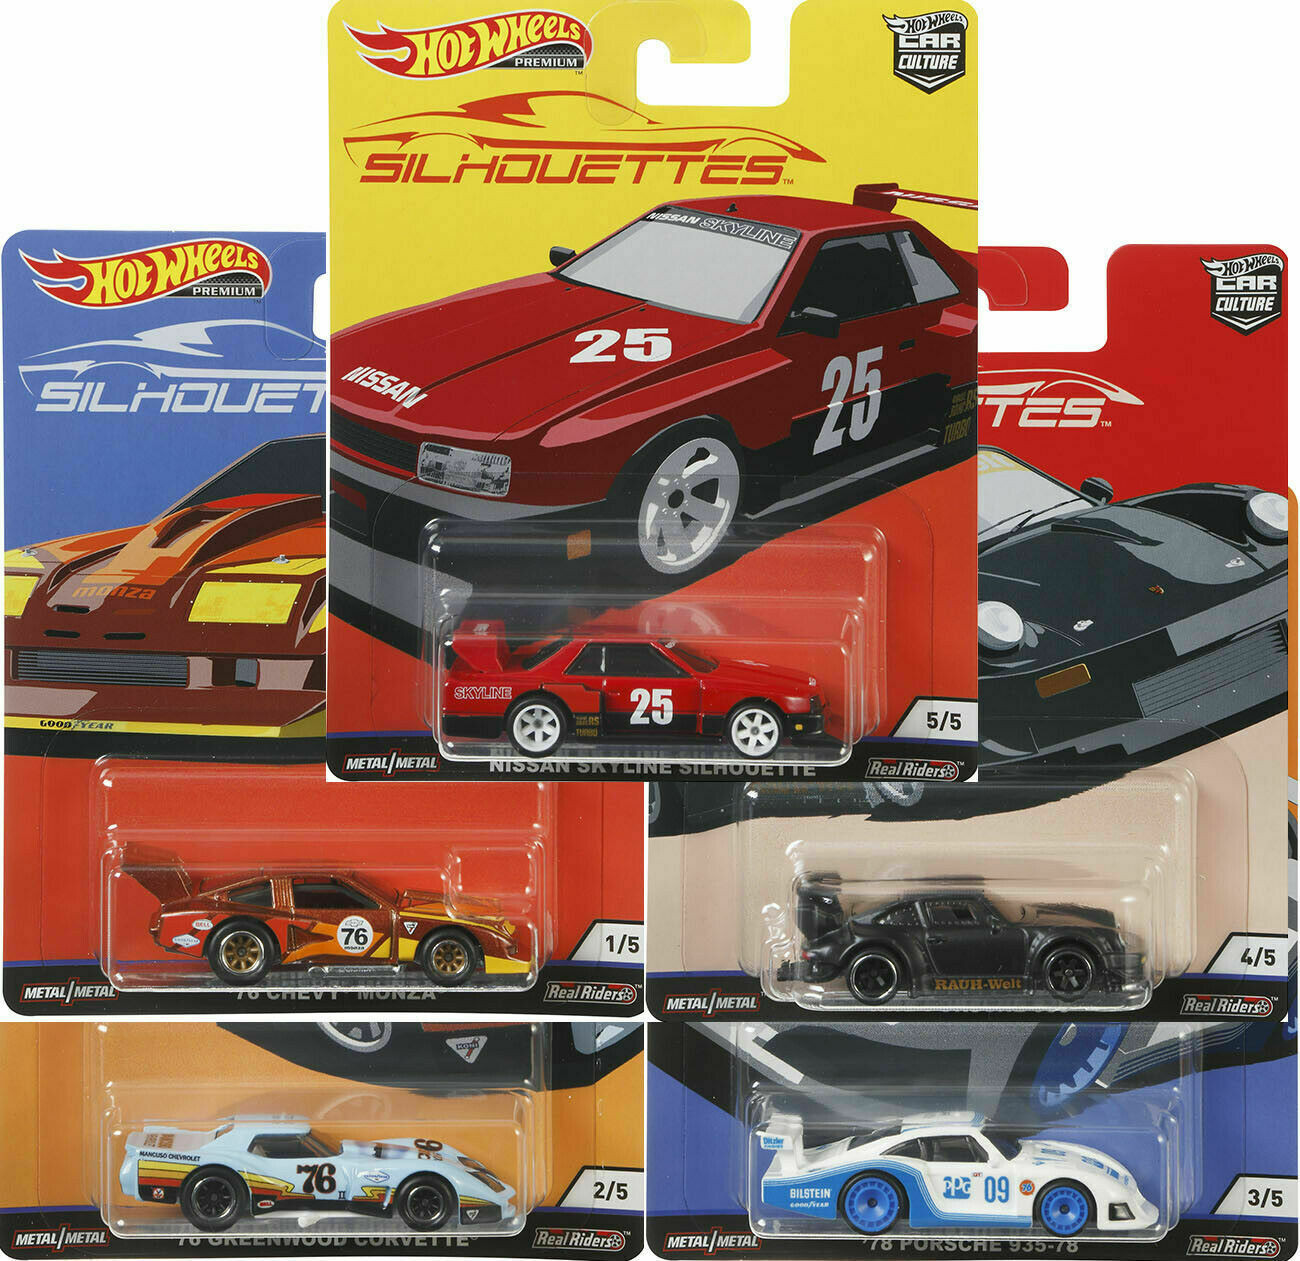 Hot Wheels - Conjunto Car Culture J - Silhouettes - Set Completo 5 Miniaturas